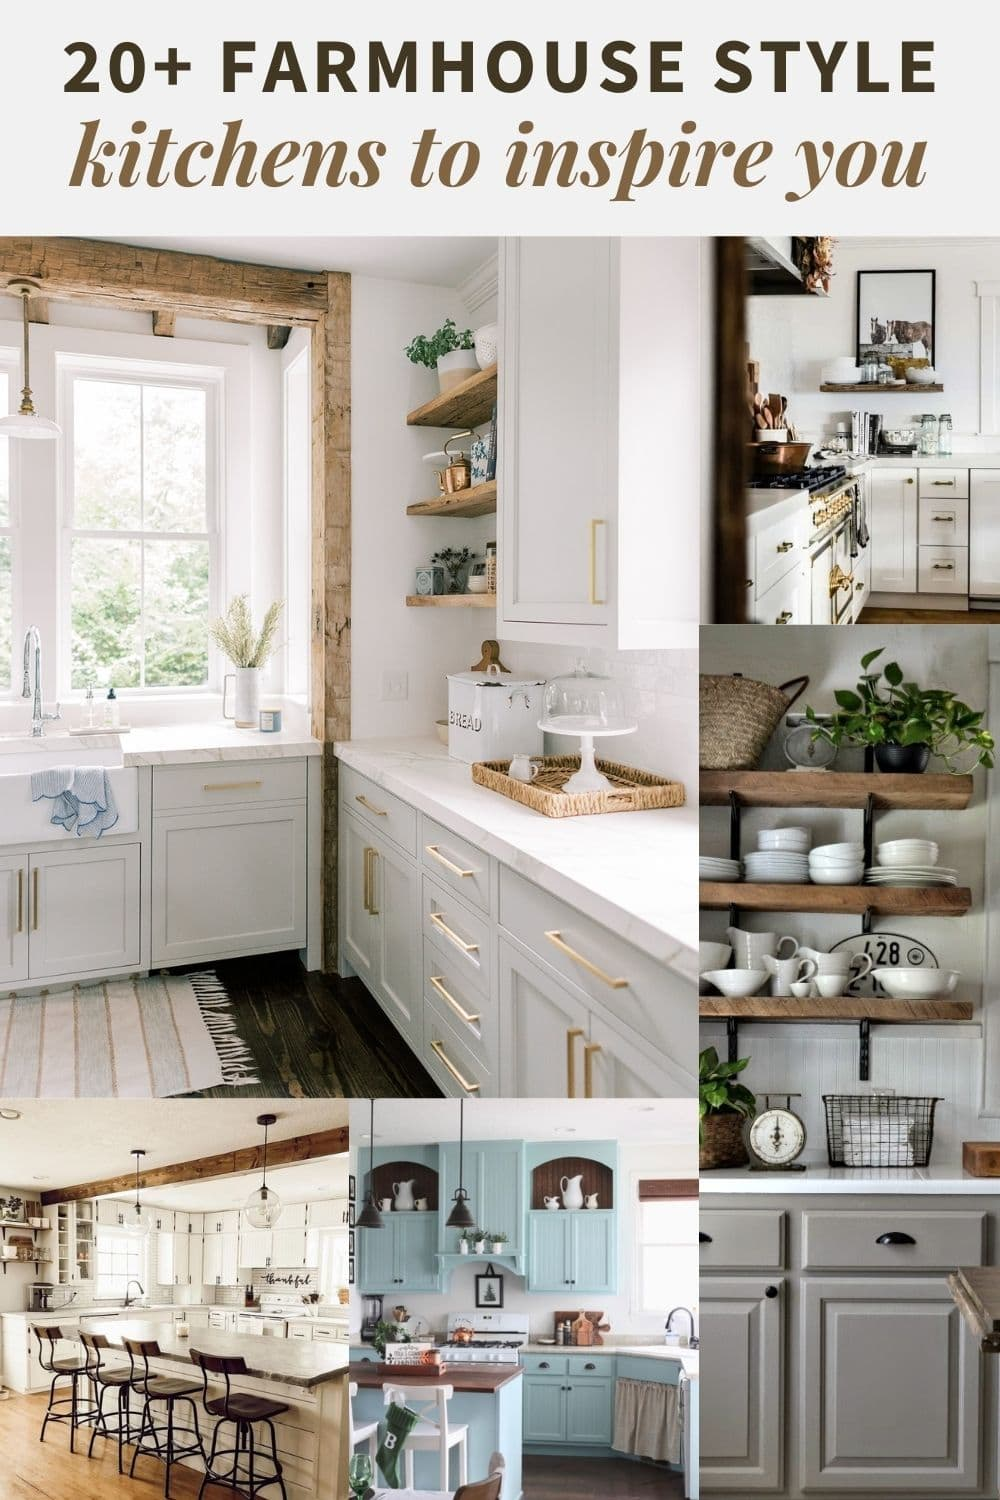 A collage of farmhouse style kitchens.